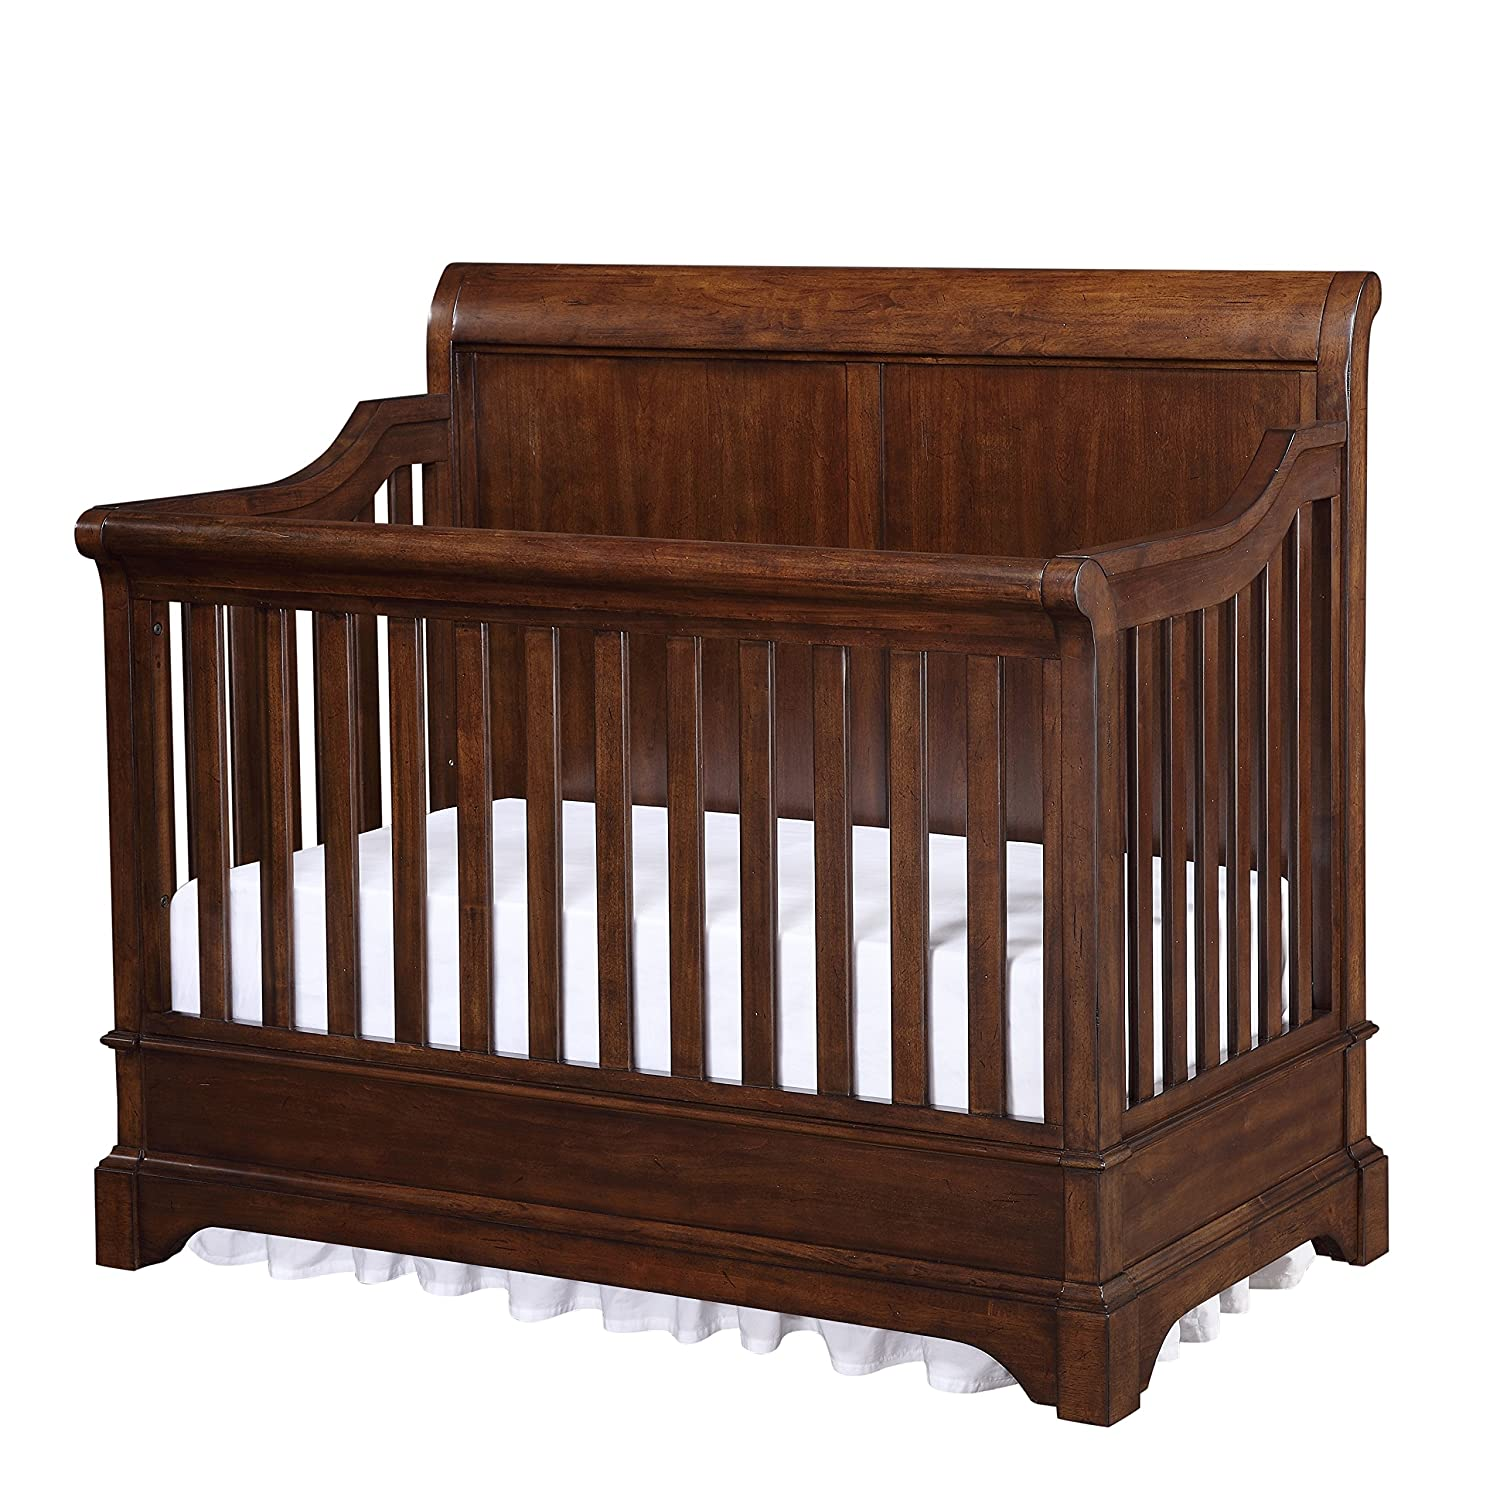 Crib for sale kijiji toronto - Safety 1st Bertini Pembrooke 4 In 1 Crib Walnut Brown Amazon Ca Baby